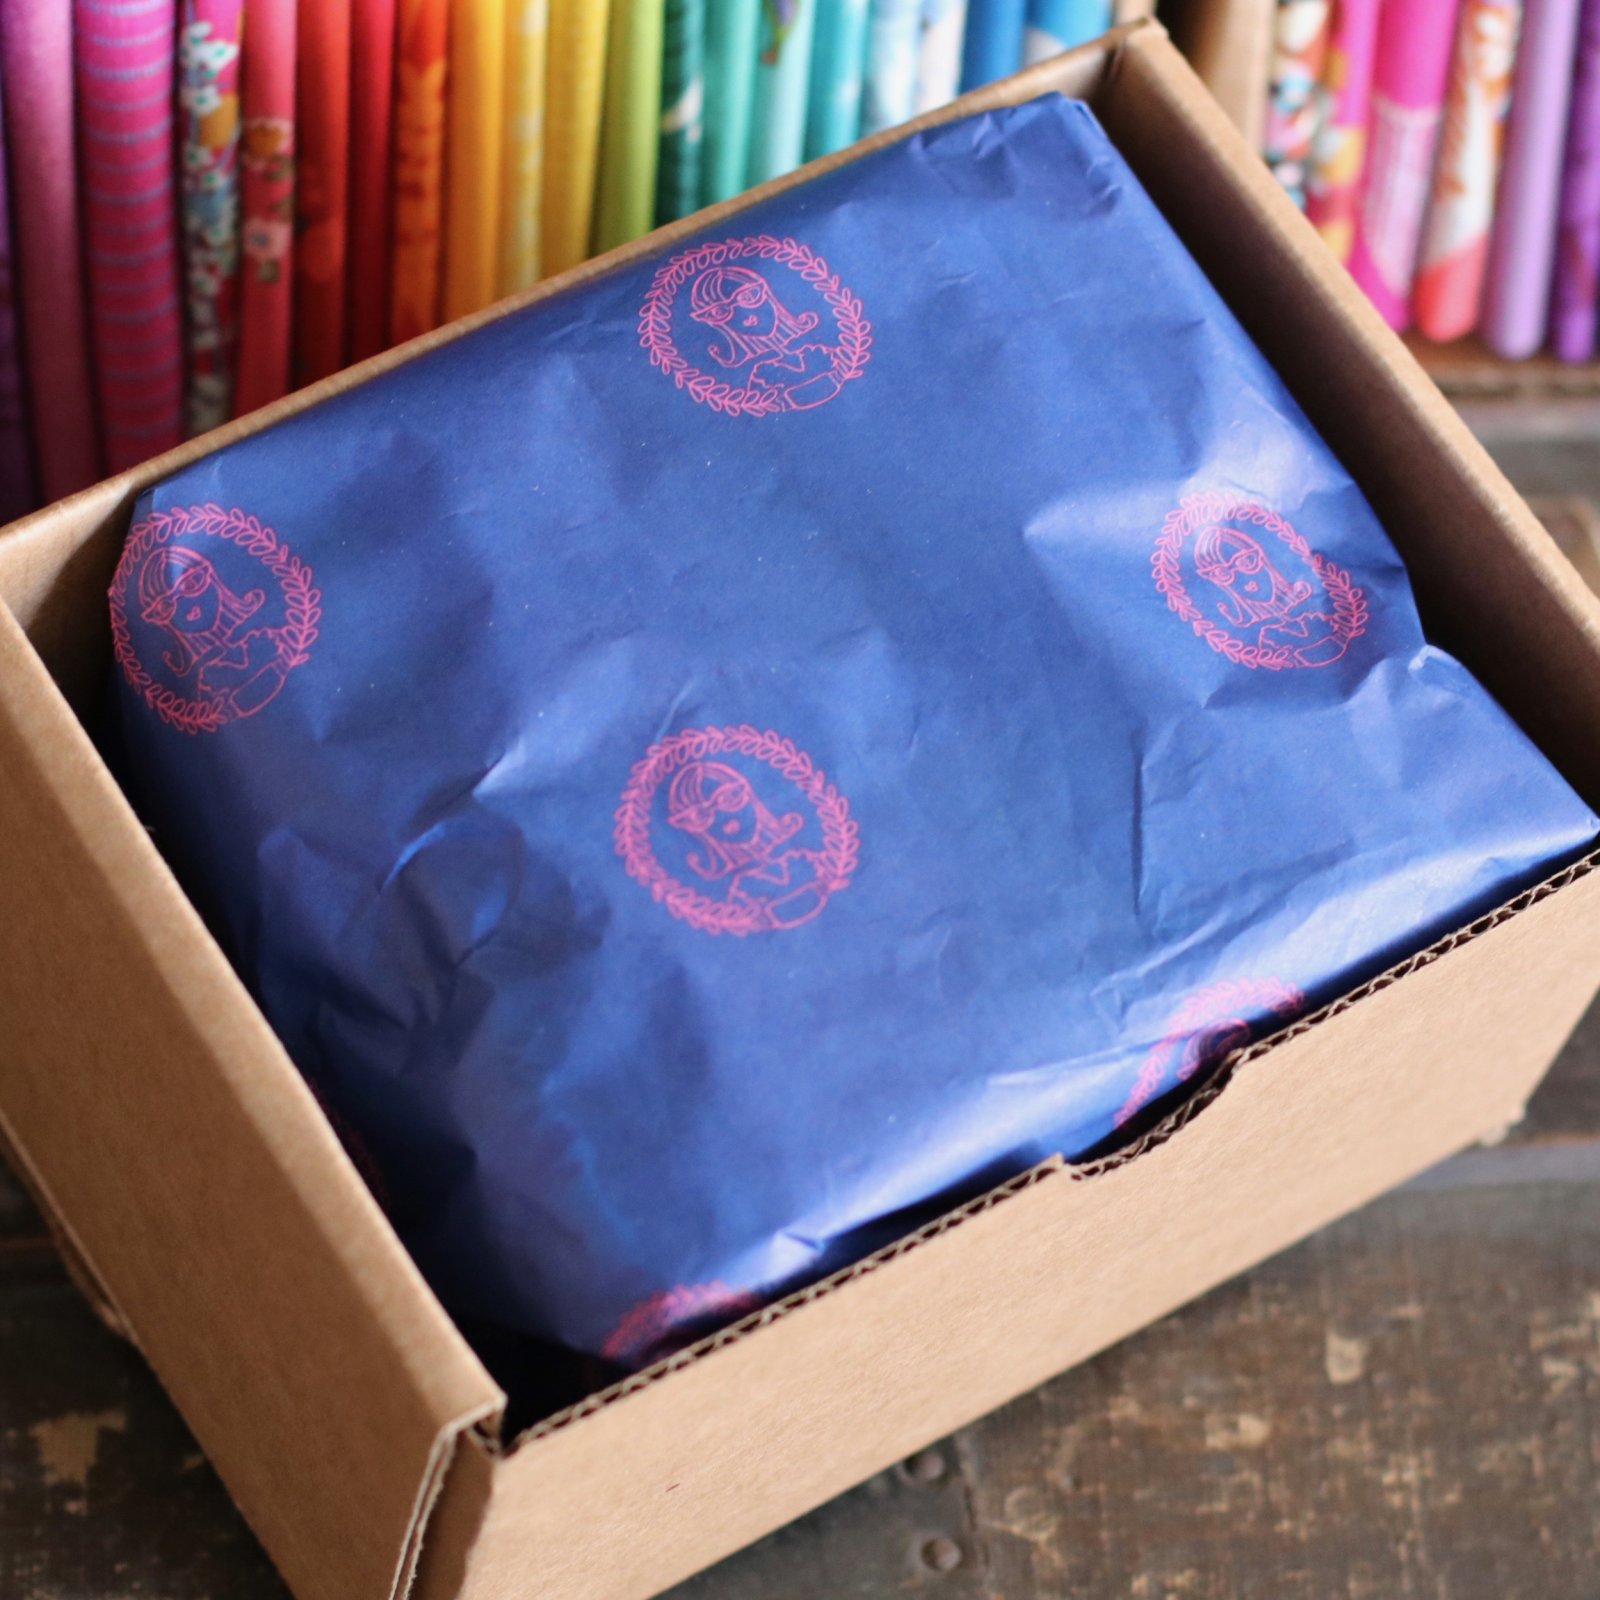 Mother's Day Gift Box - 20 pc. Fat Quarter Variety Pack